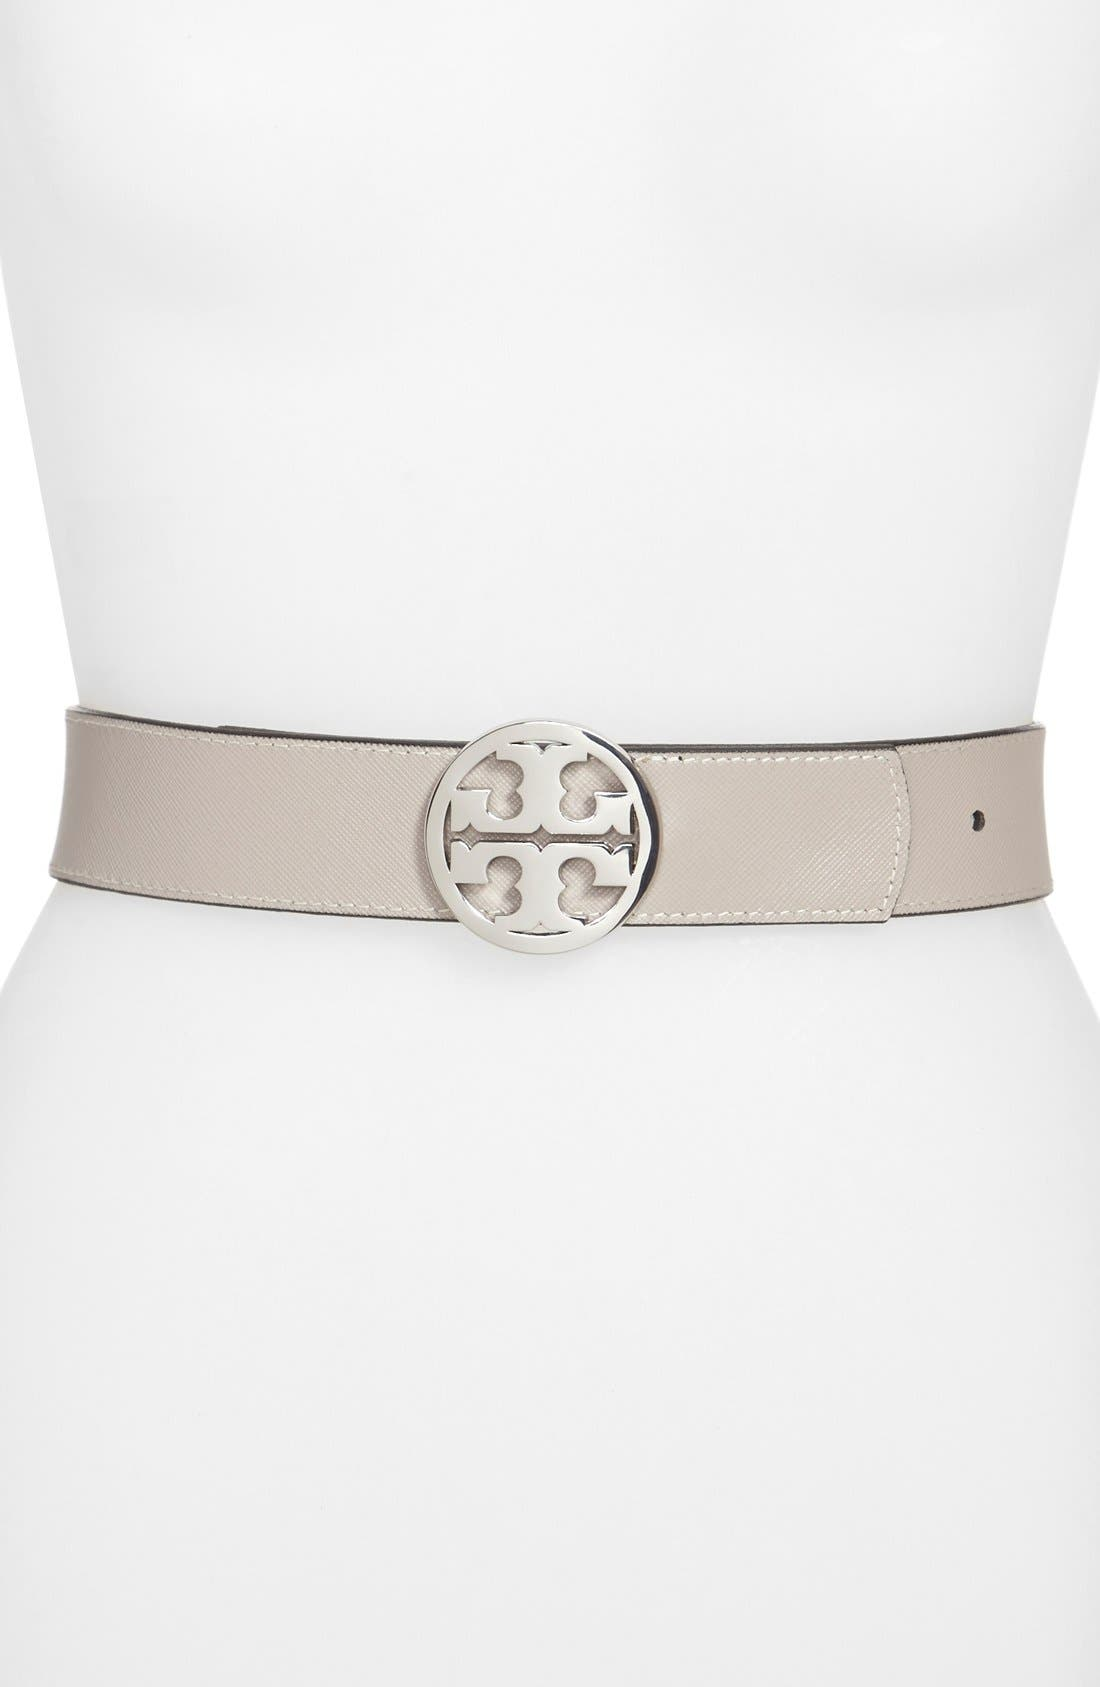 'Classic Logo' Reversible Leather Belt,                             Alternate thumbnail 2, color,                             001